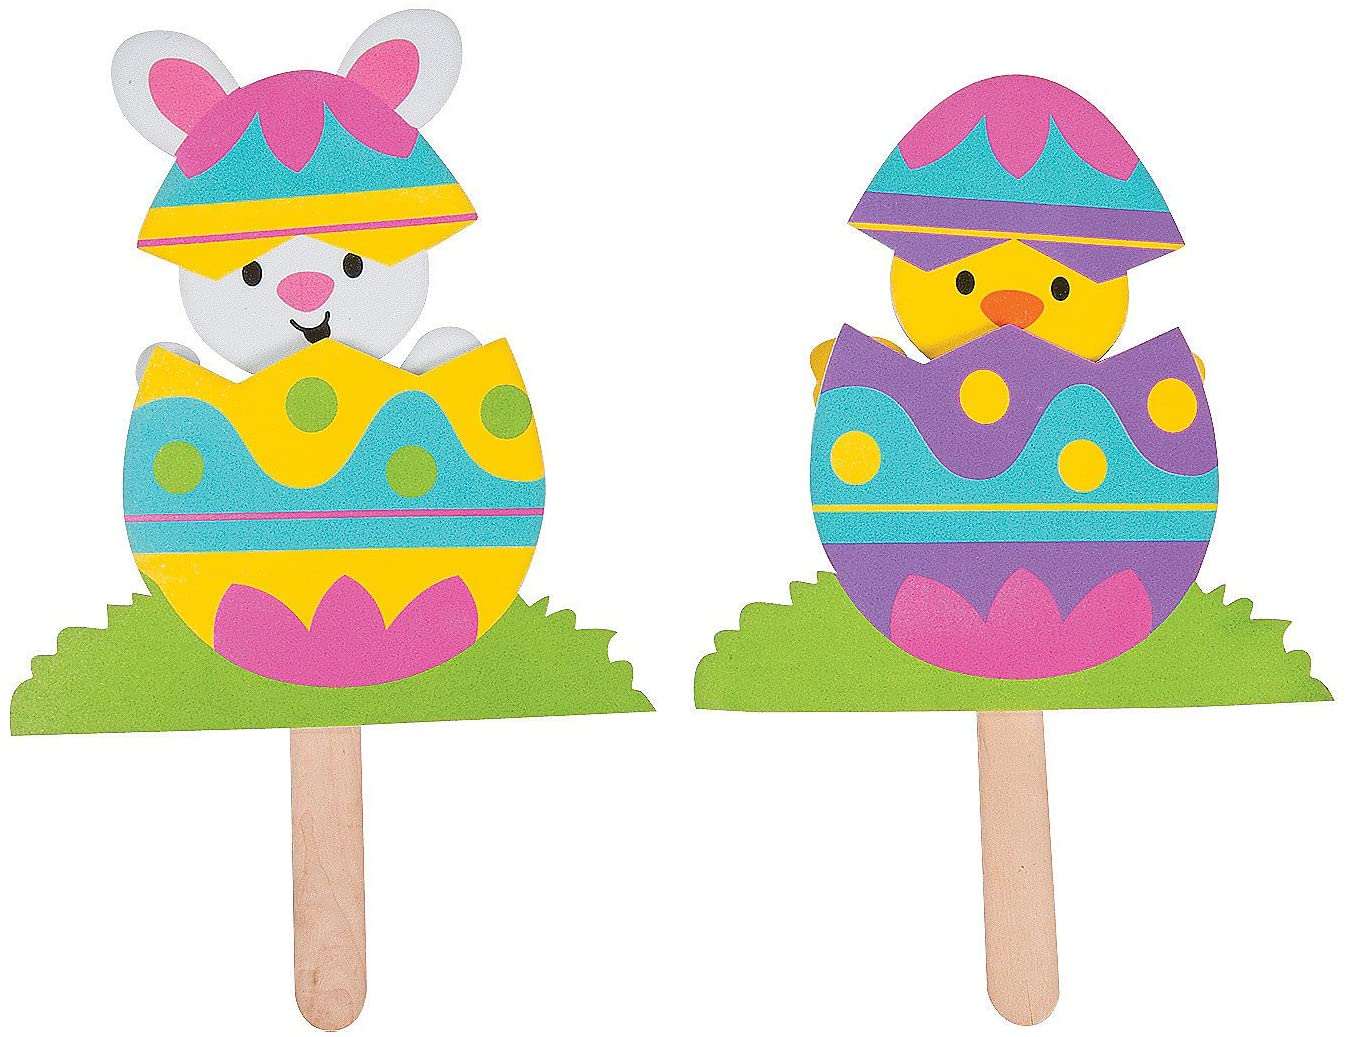 Pop Up Easter Character Craft Kit - 12 - Crafts for Kids and Fun Home Activities